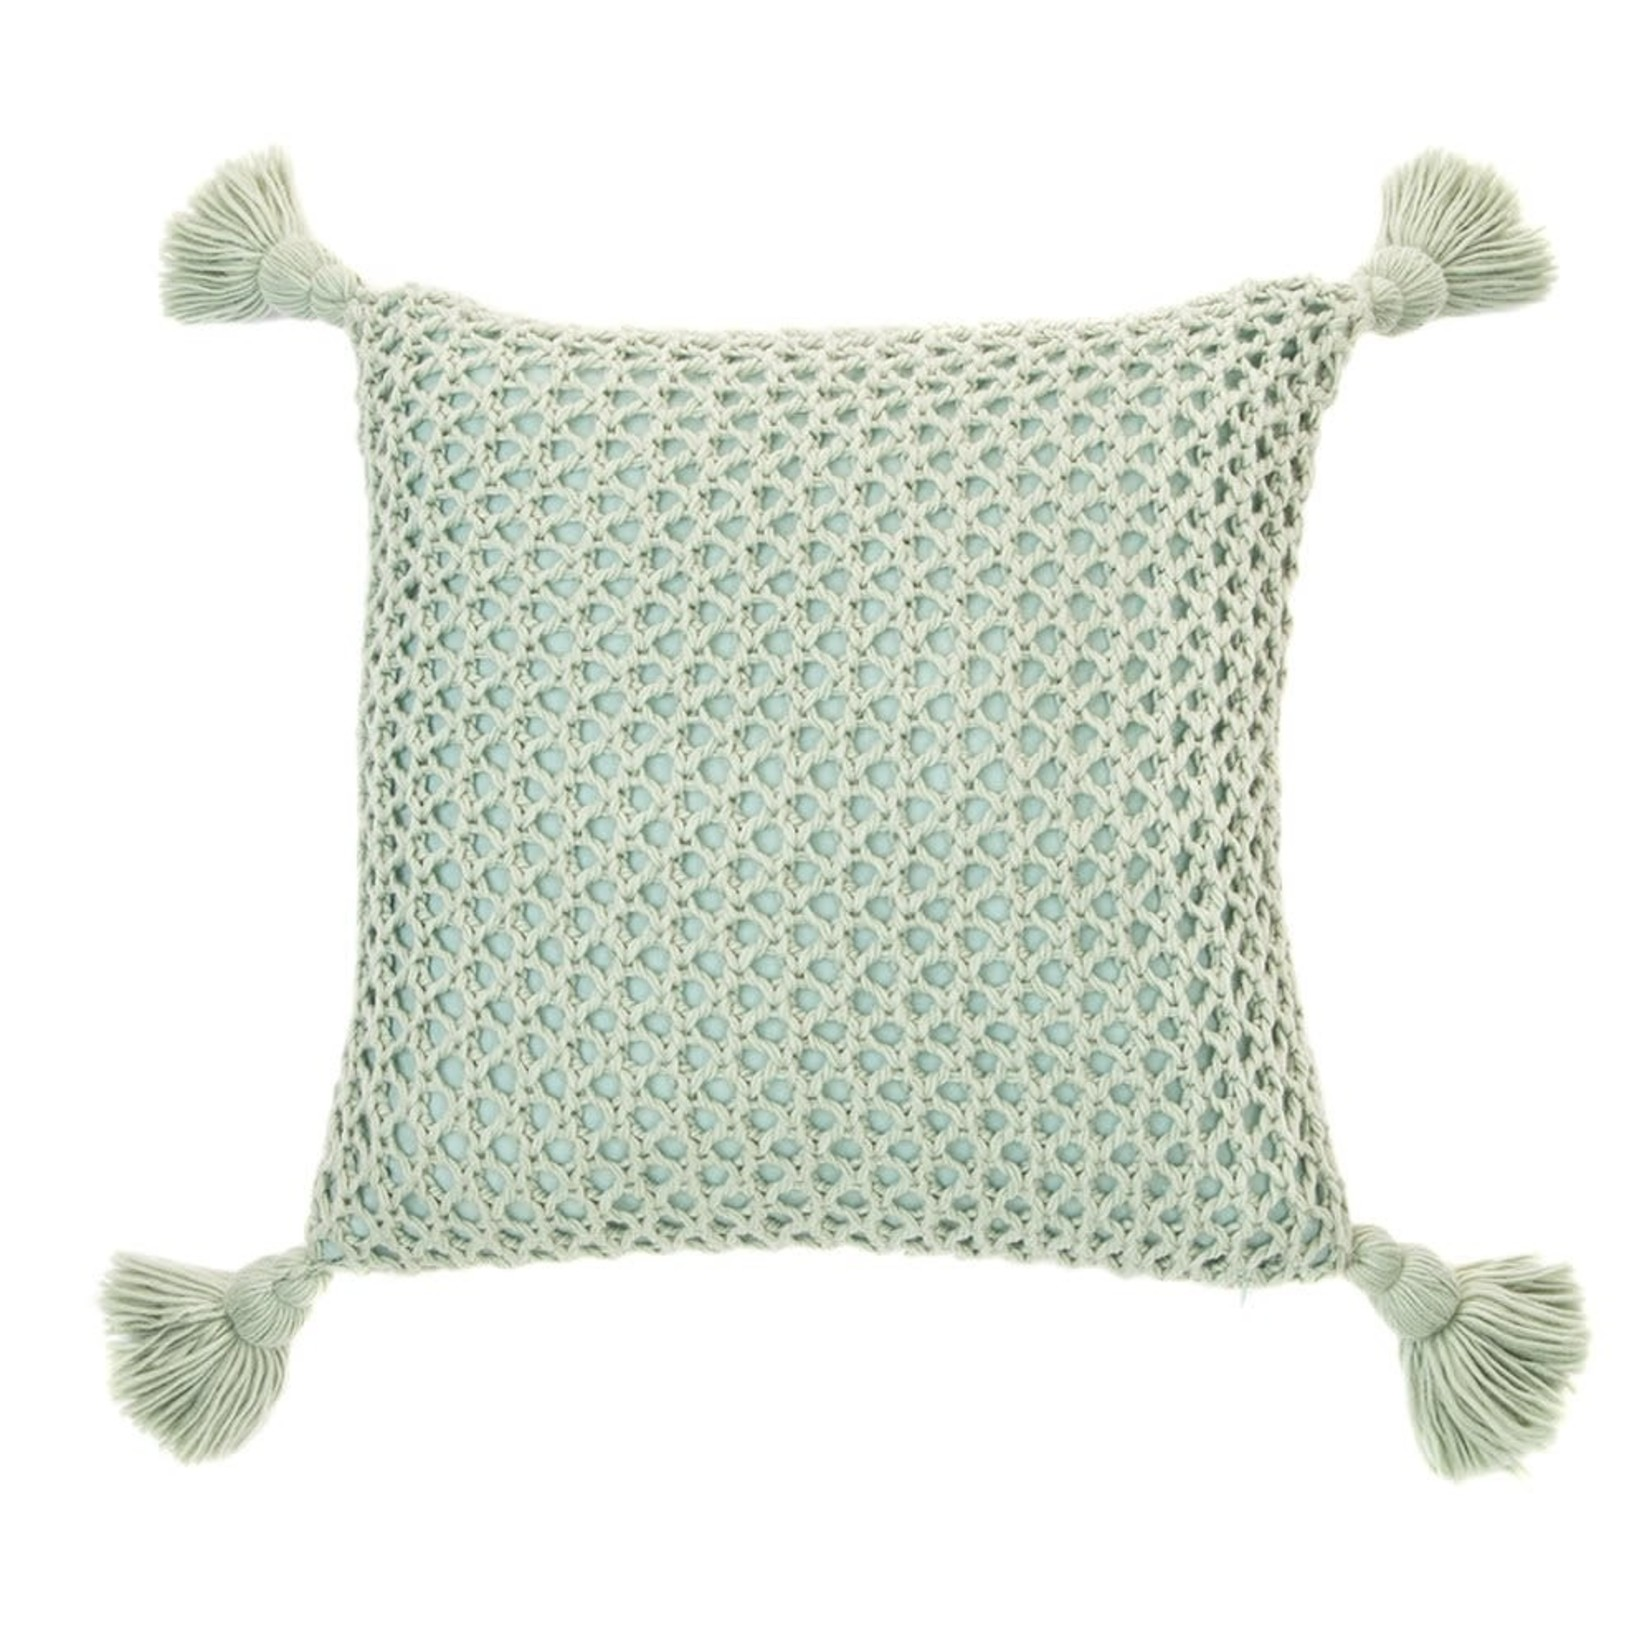 Shiva Sage Knitted Cushion